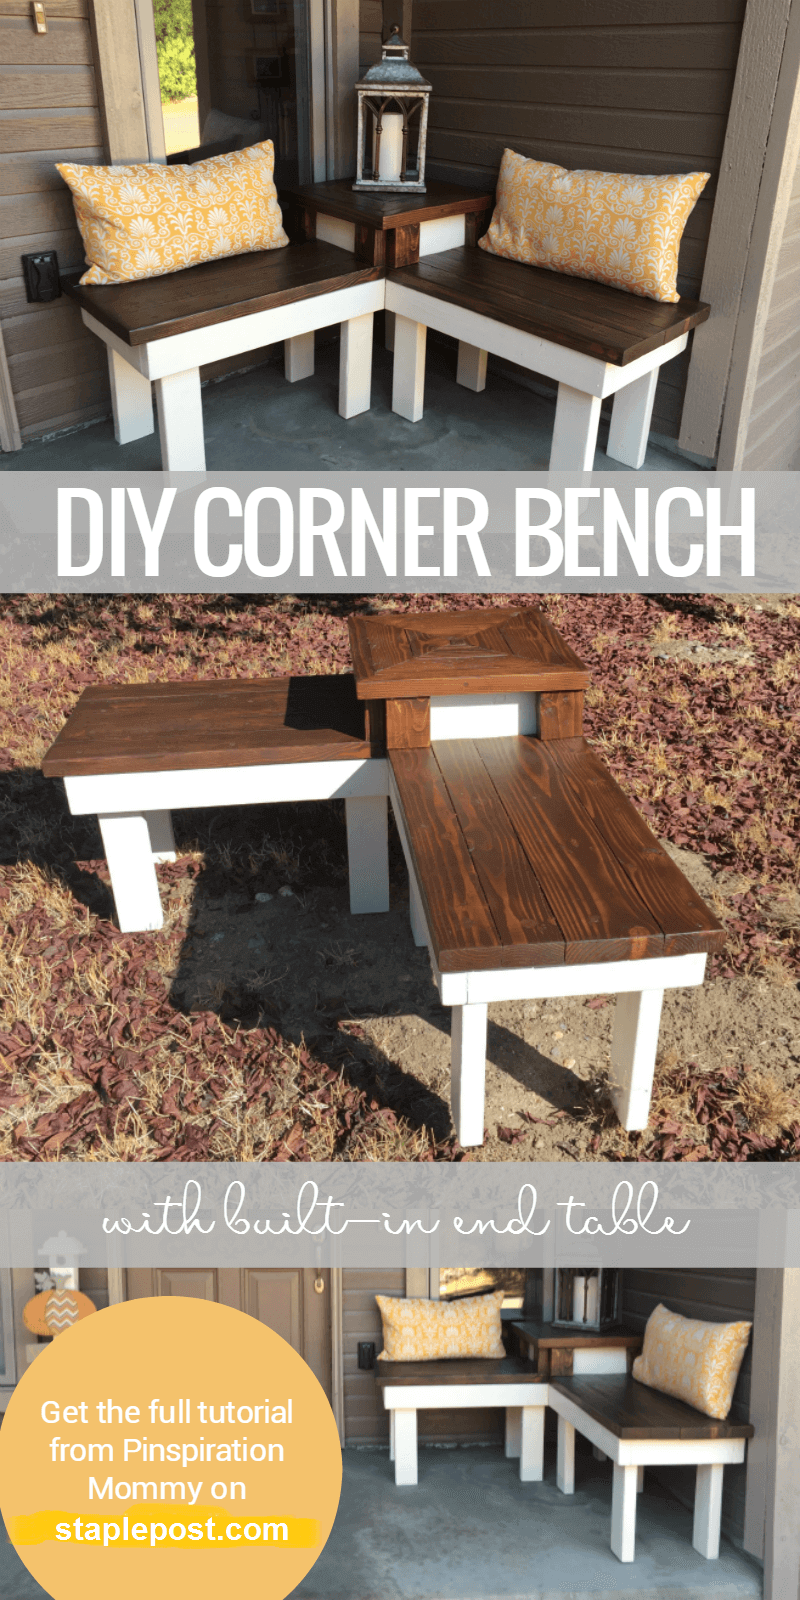 pallet patio furniture decor. Newport Nuance DIY Corner Bench With Table. Diy Pallet Patio Furniture Decor P